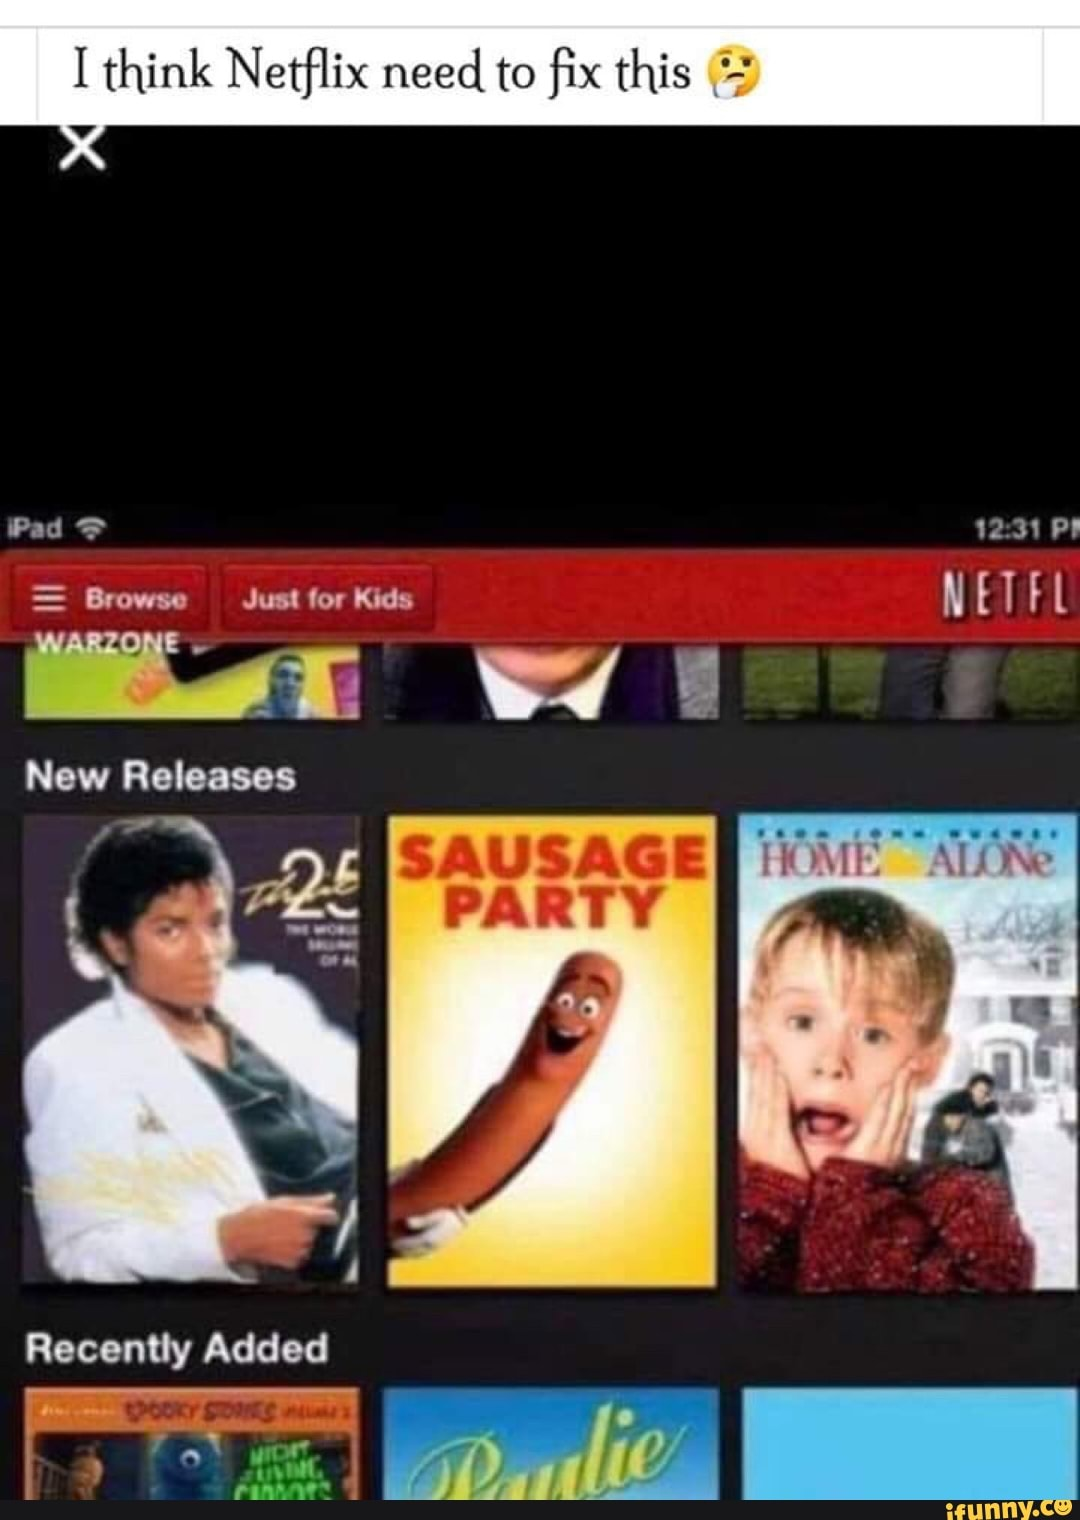 I think Netflix need to fix this _'-' - iFunny :)